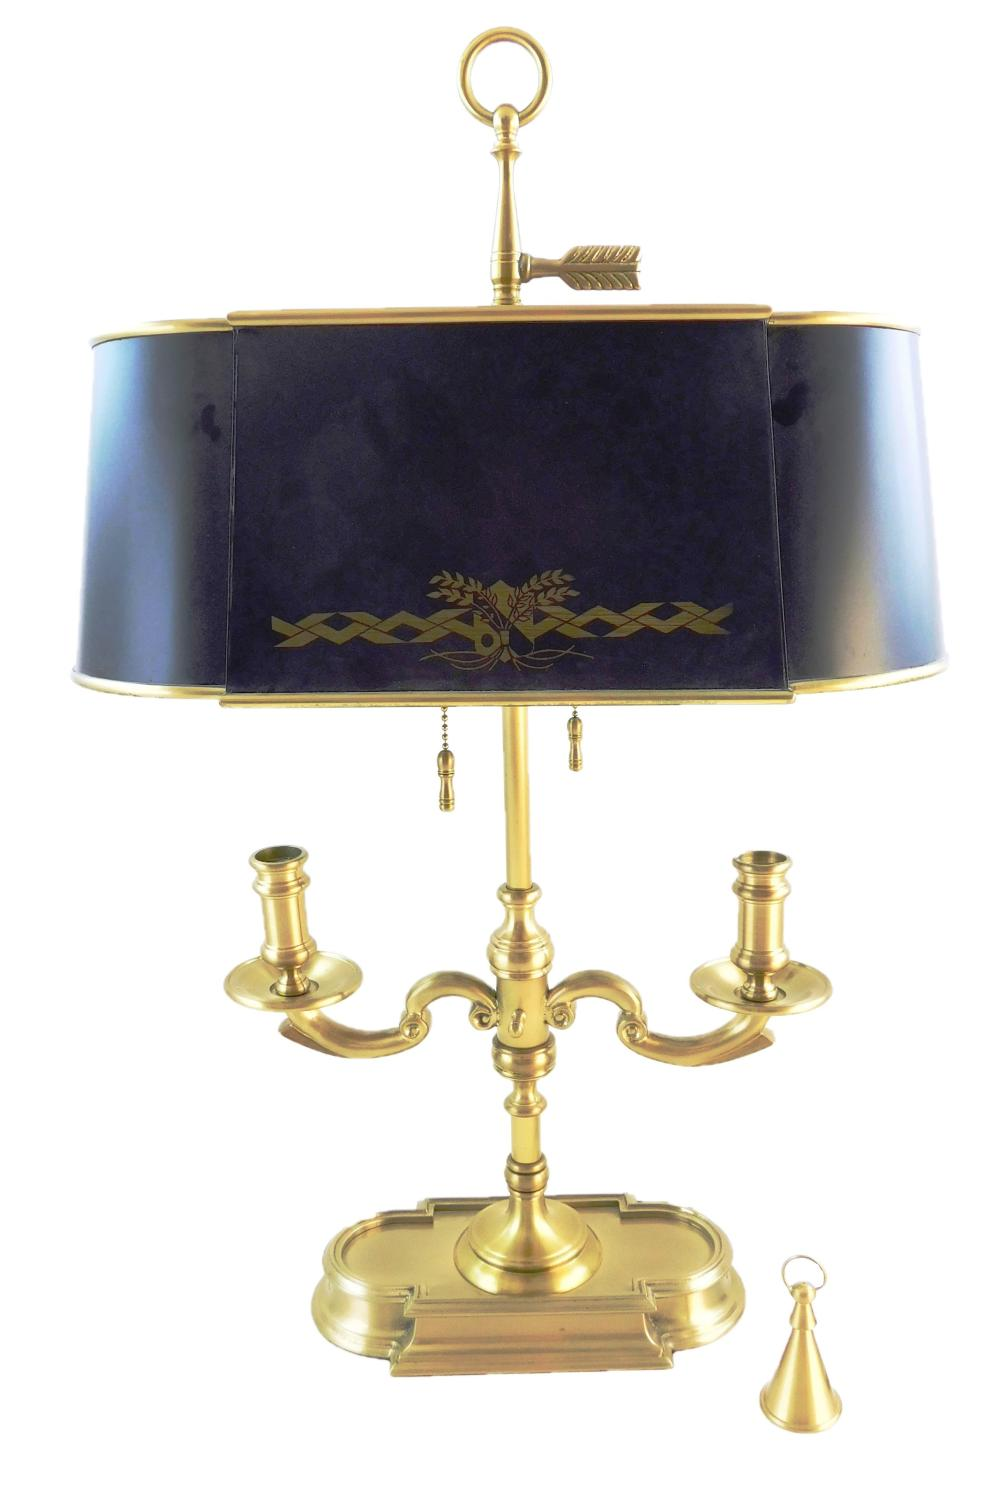 Brass bouillotte lamp, 20th C., ring handle finial over two lights, each with string pull, standard with two candleholders with remo...